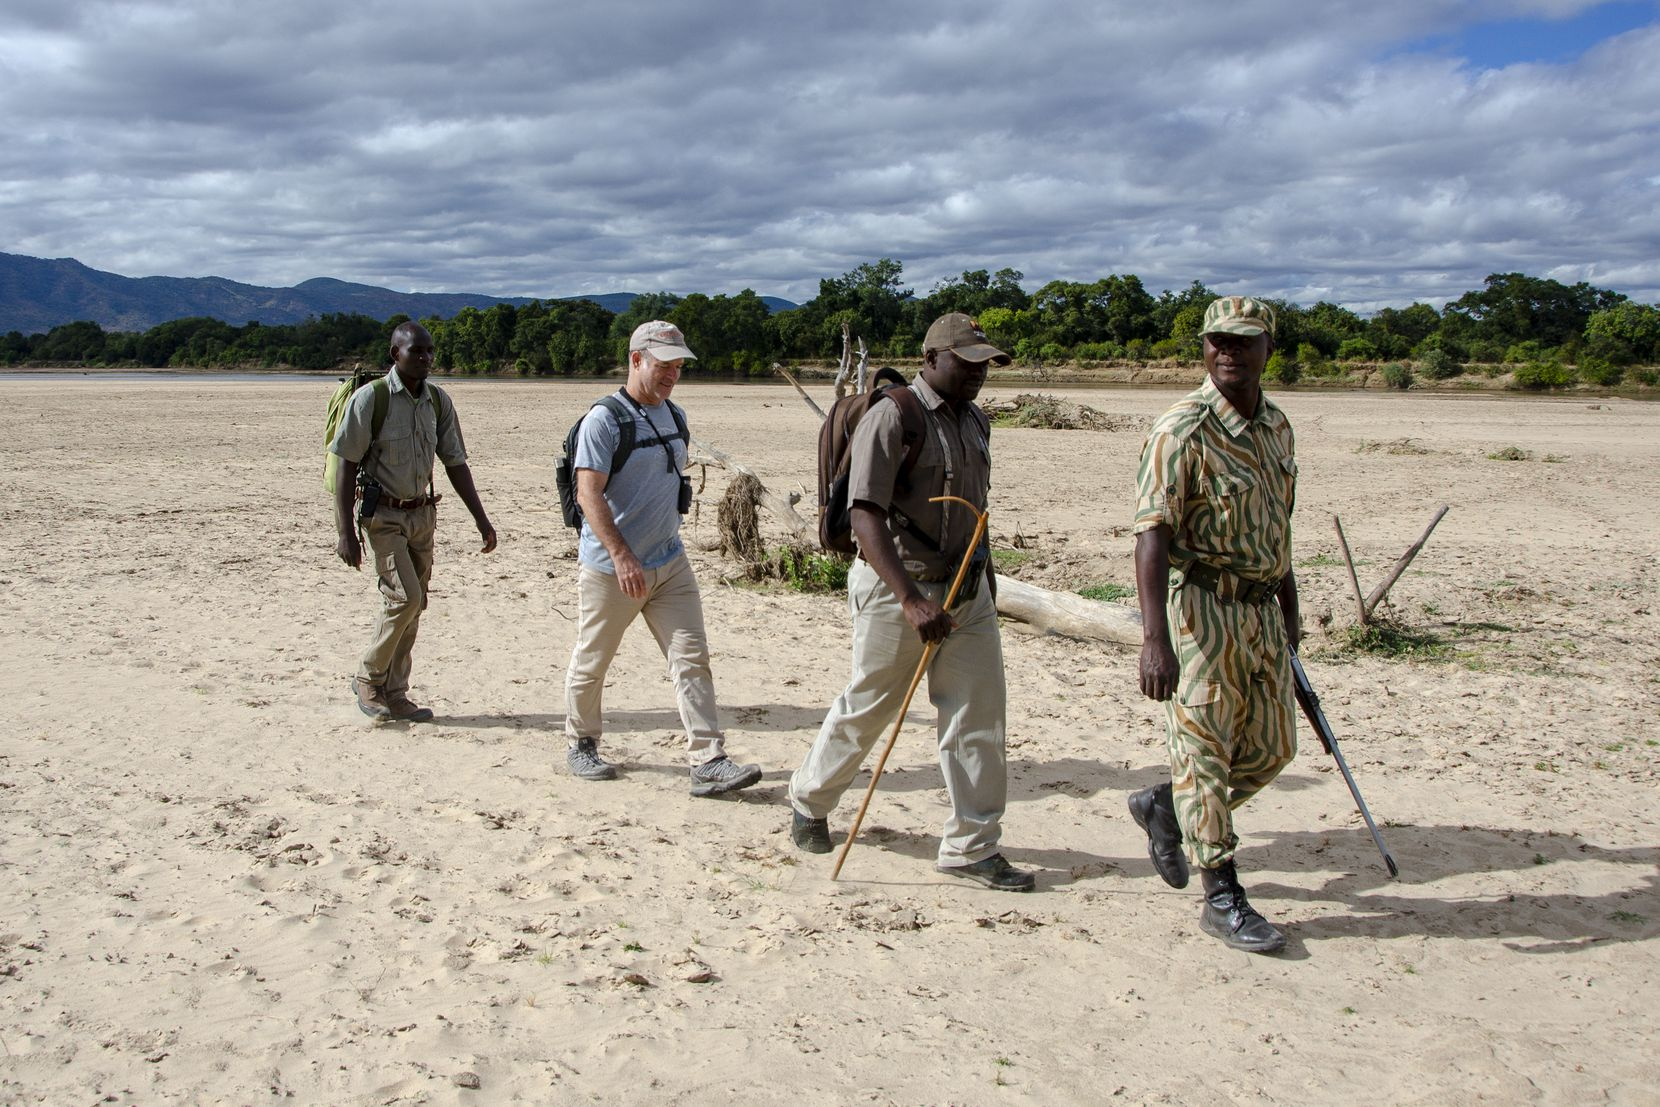 The walking safari was first tried decades ago in the Luangwa Valley and is still practiced today. An armed park ranger leads the way to help ensure visitors' safety.